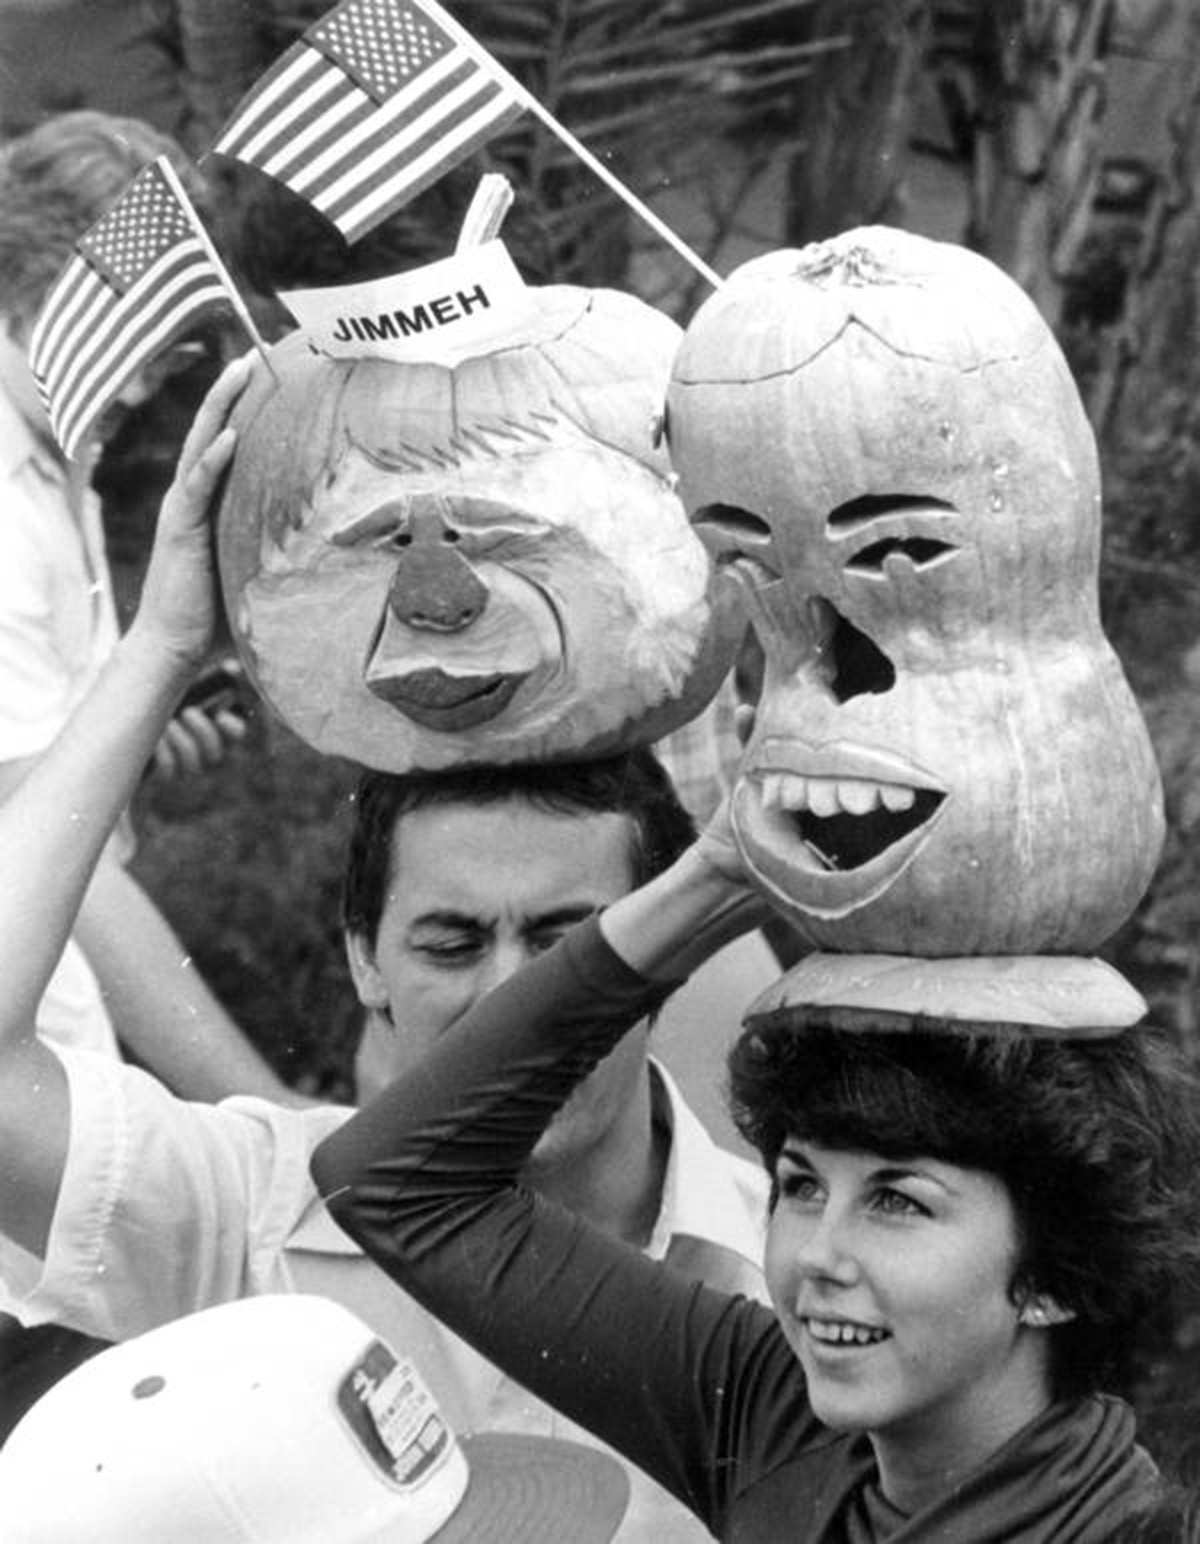 People balancing pumpkins carved into caricatures on their heads.